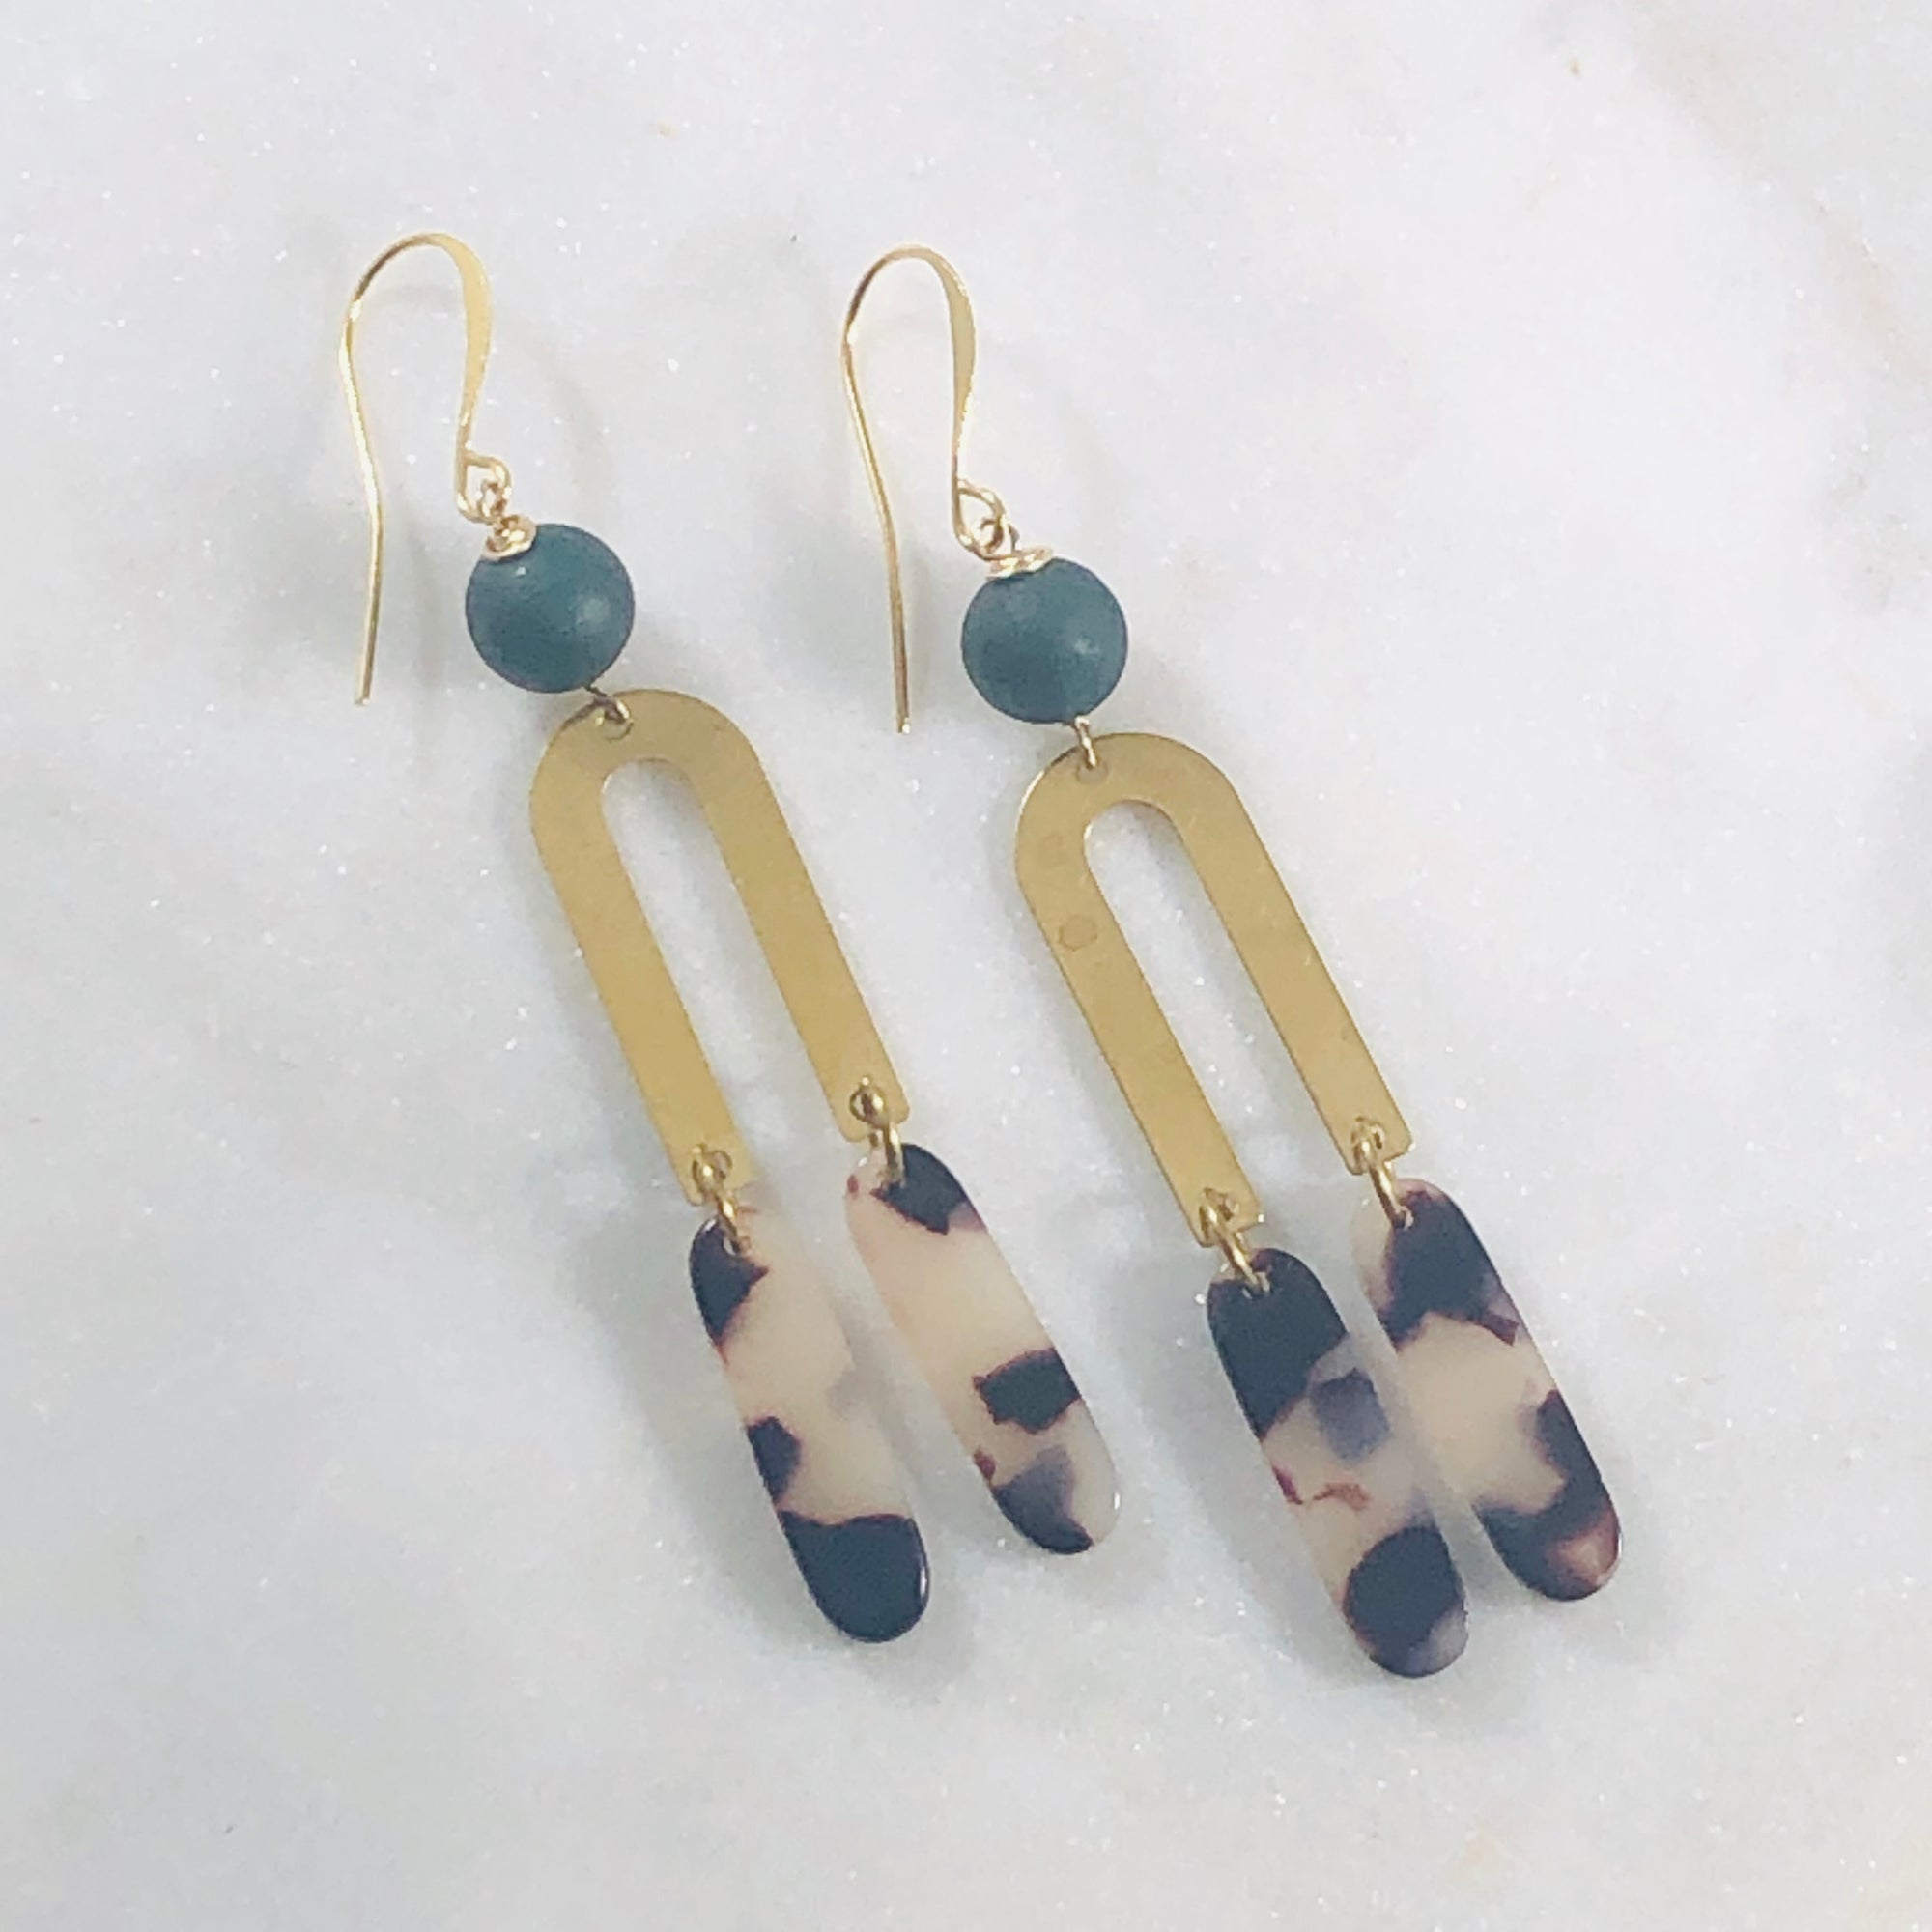 Handmade, geometric, modern earrings with brass, agate and tortoise lucite